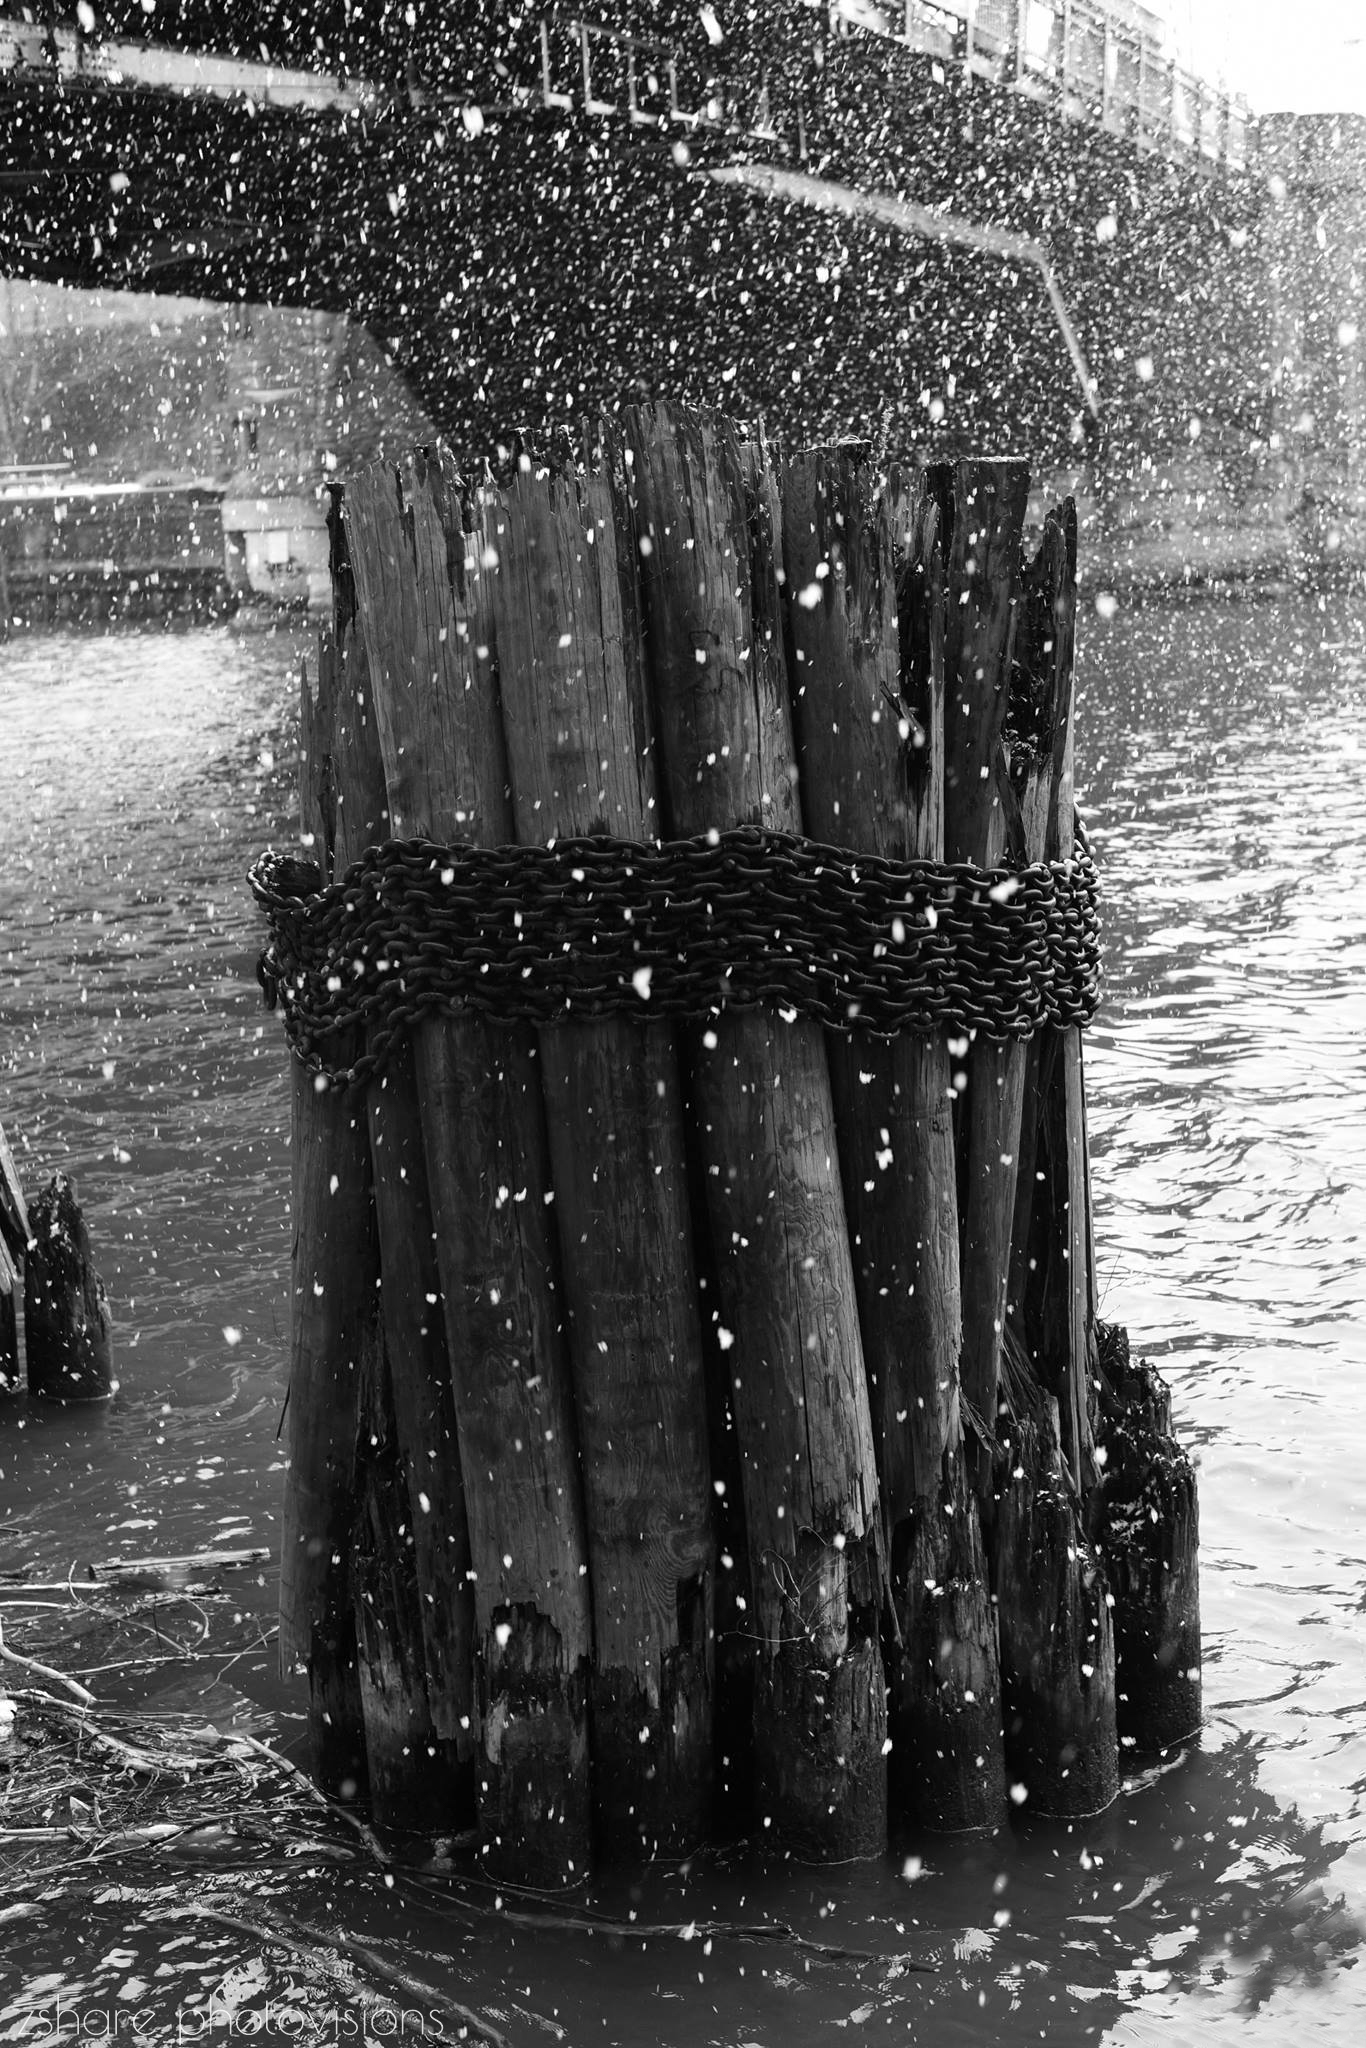 Snow on Chicago River 2 by ZShare Photovisions